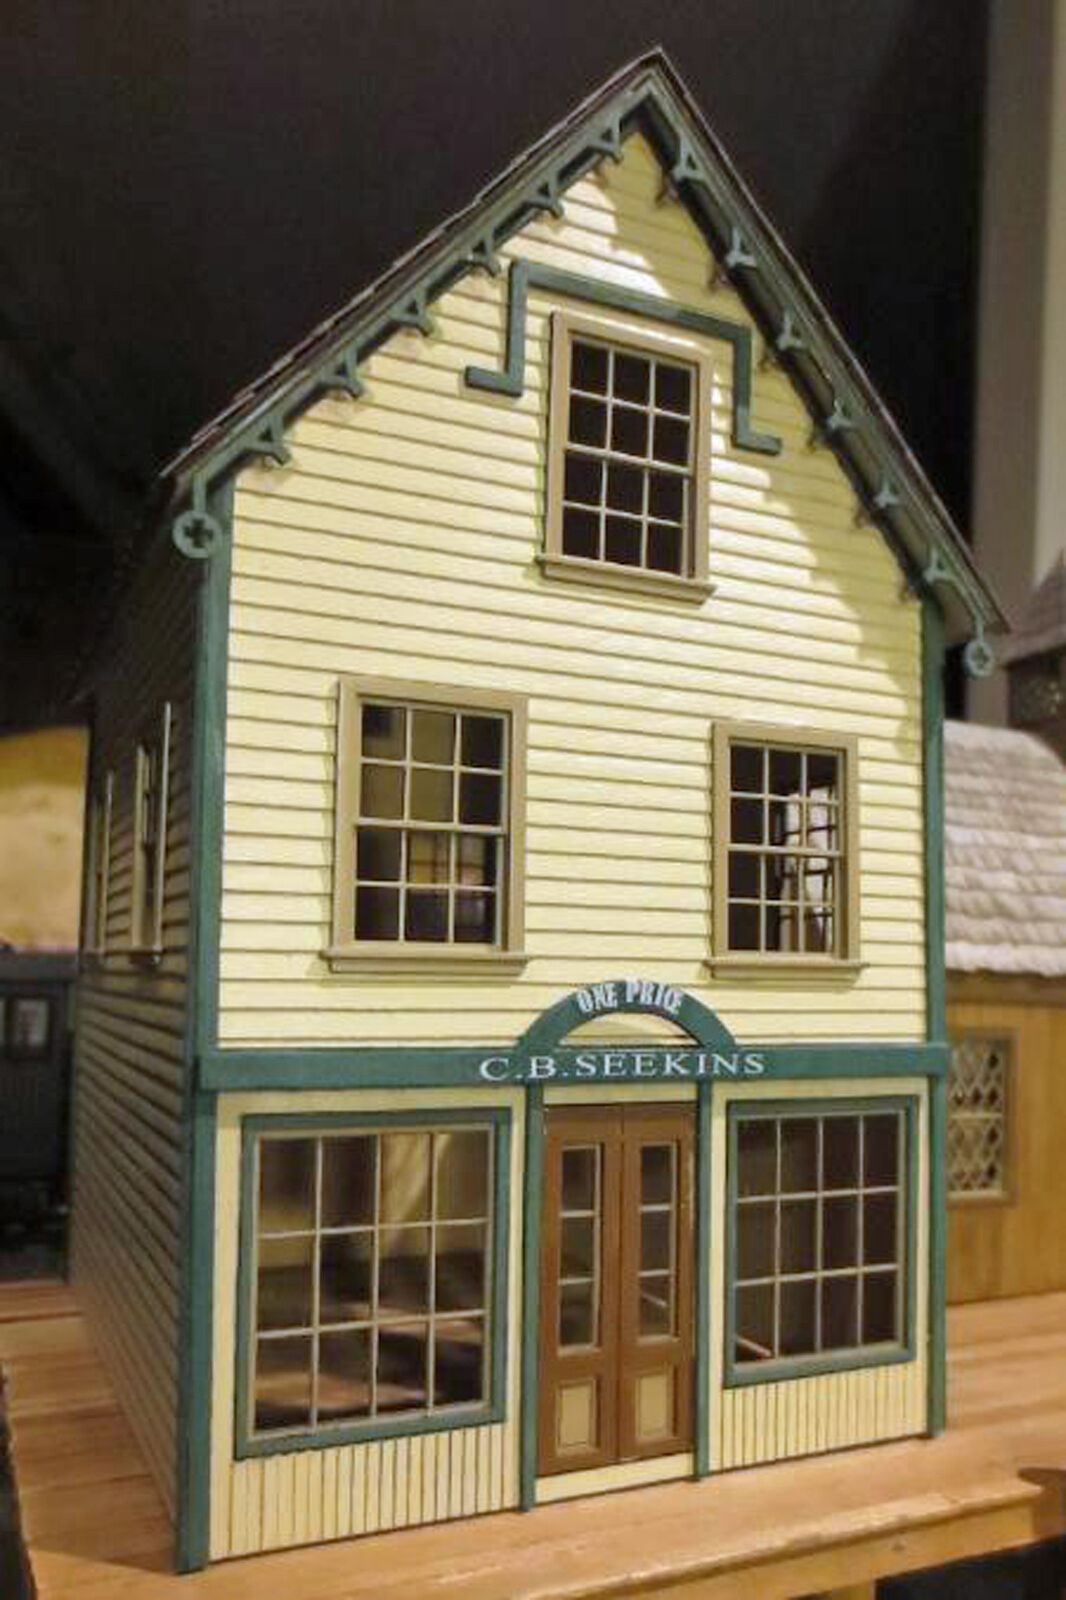 C B SEEKIN'S DRY GOODS O O O On30 Model Railroad Unpainted Structure Laser Kit DF422 17cabc